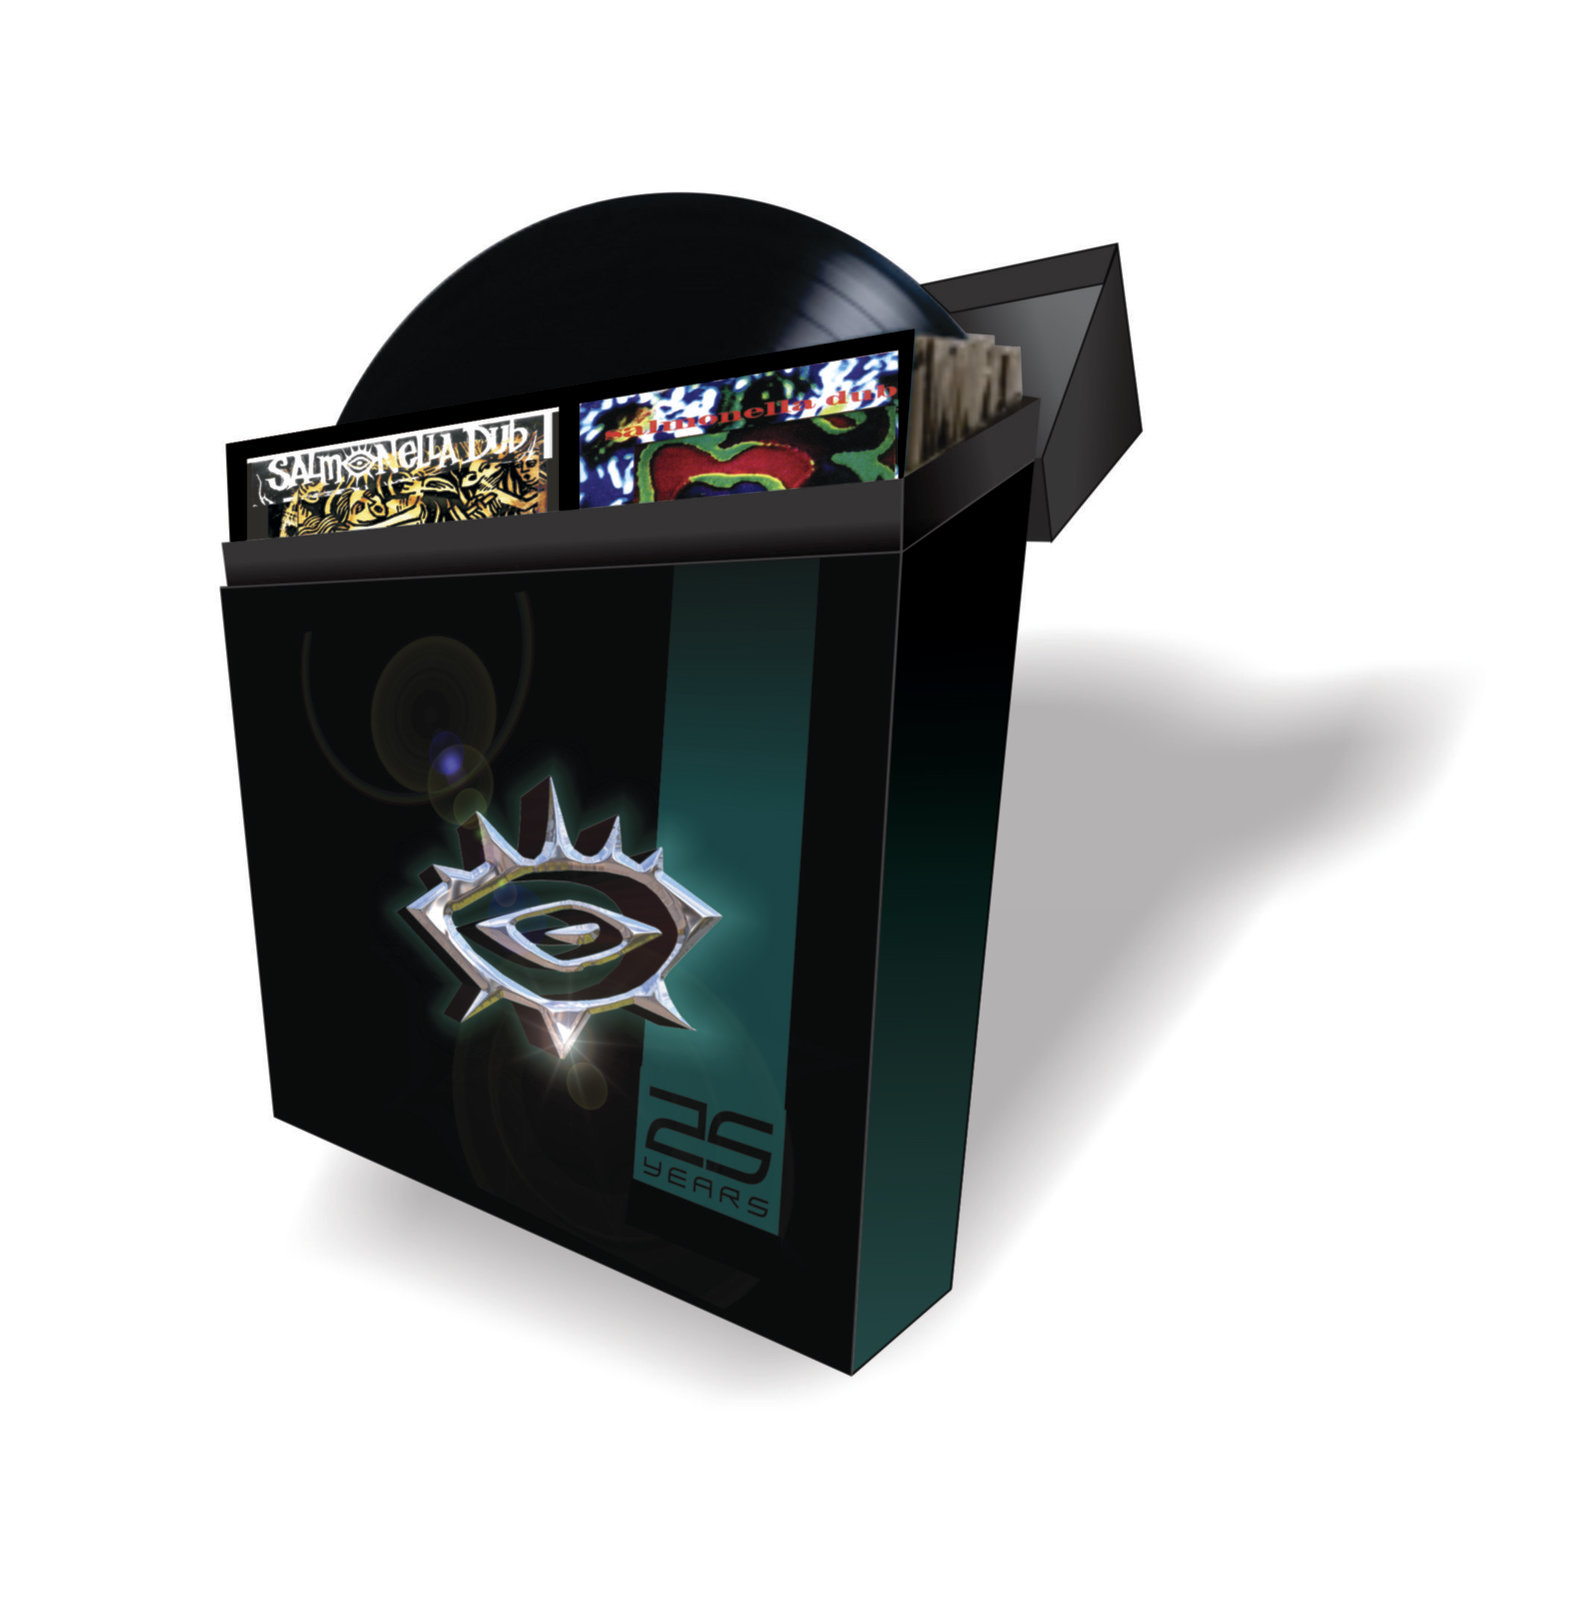 Limited Edition Deluxe Vinyl Box Set by Salmonella Dub image